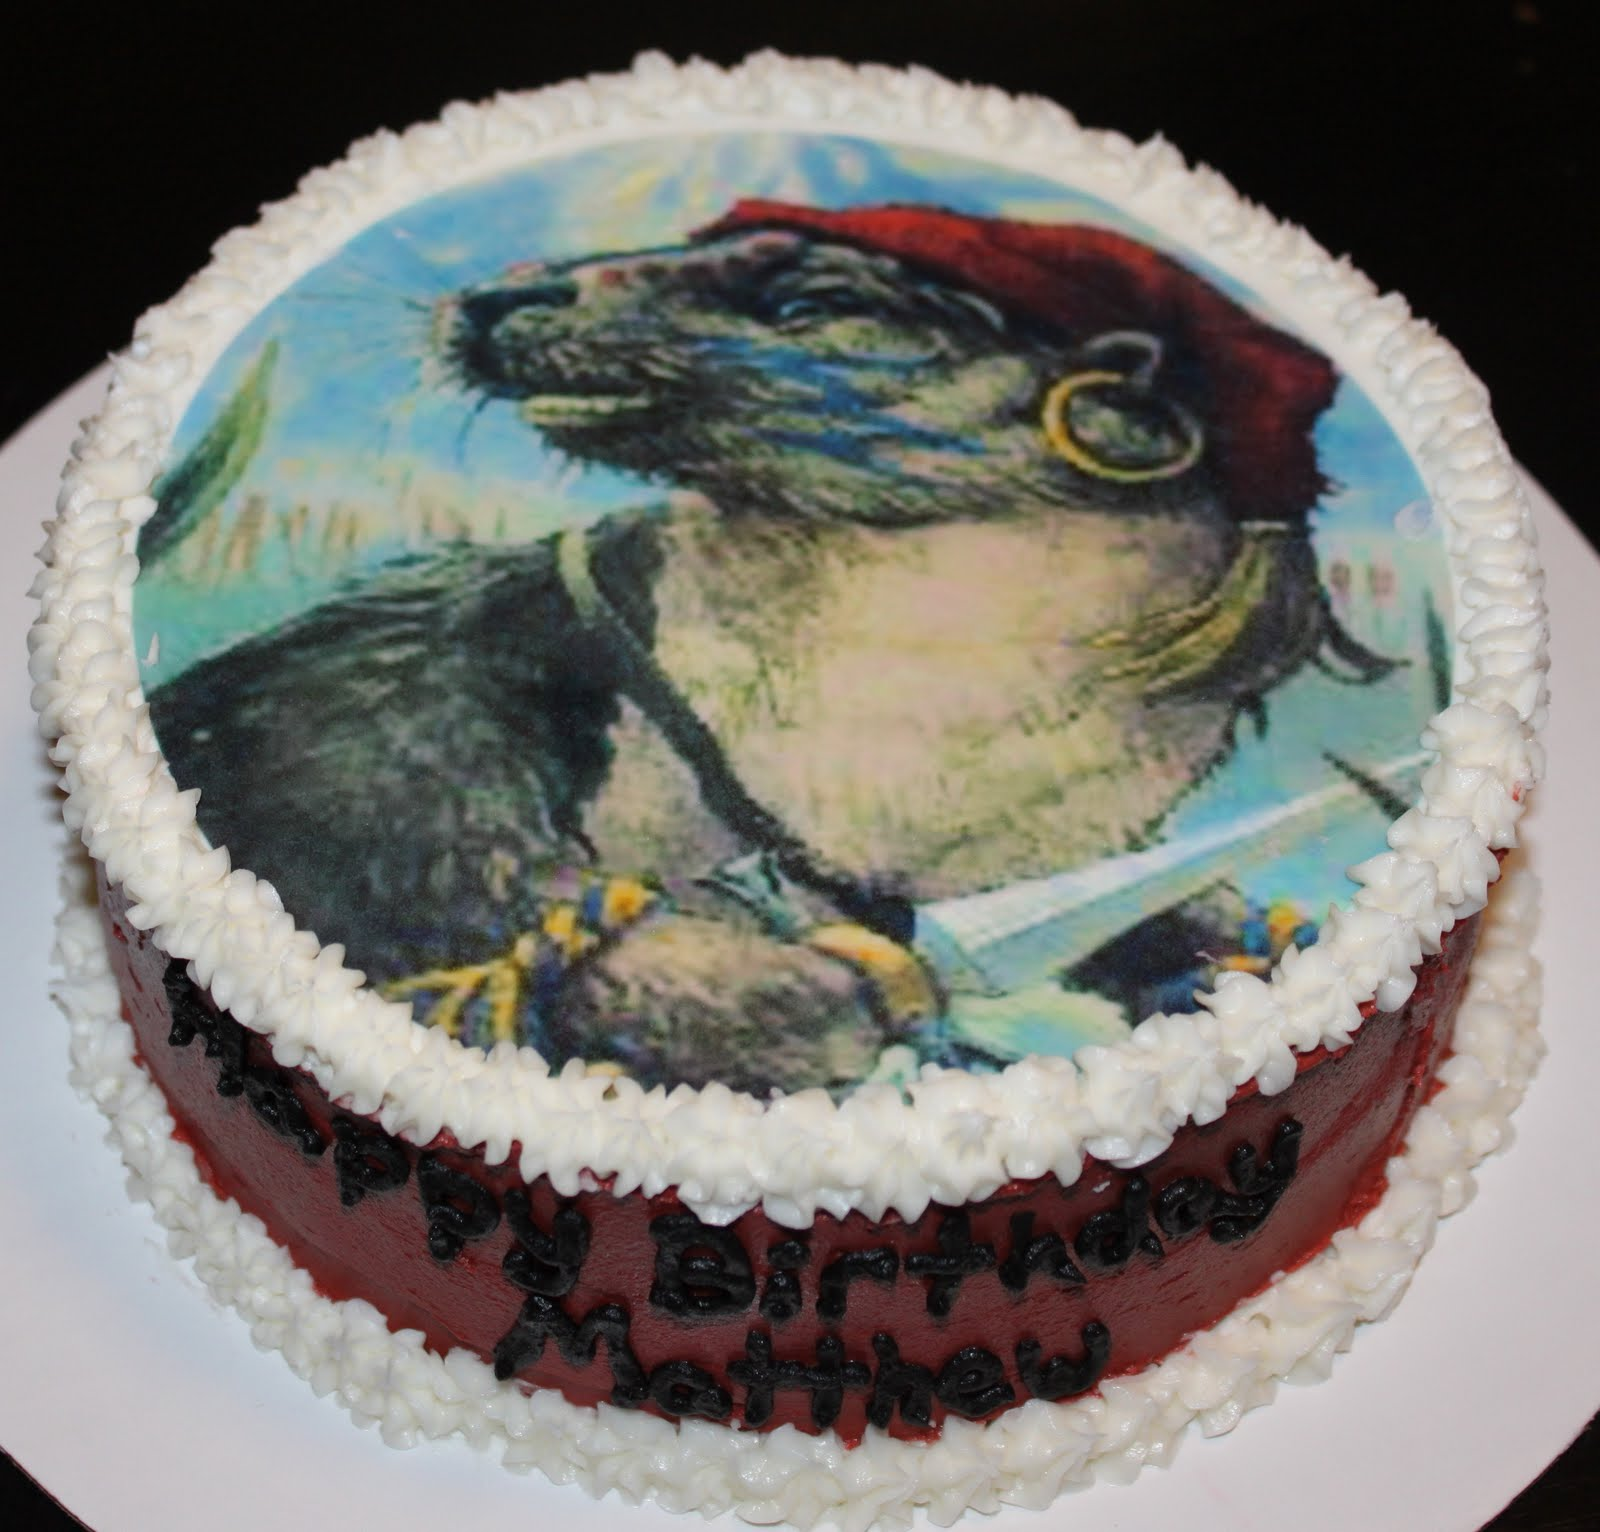 Pin pin army cake theater on pinterest cake on pinterest for Tattoo shops in new braunfels